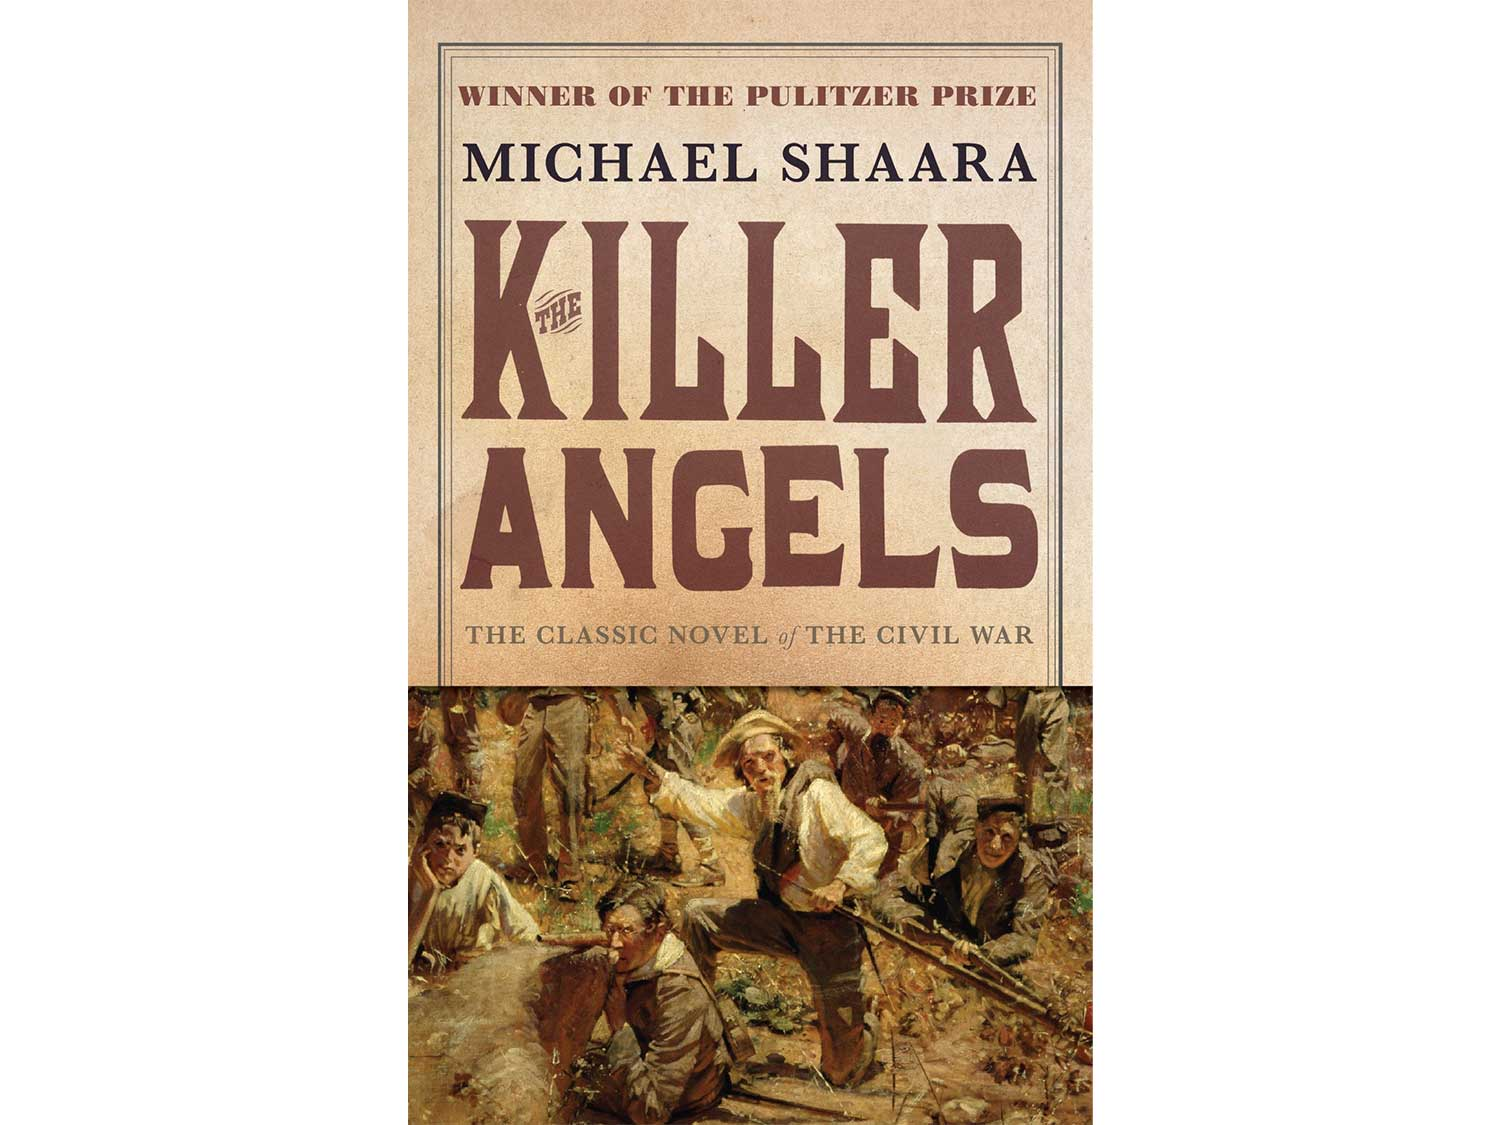 The Killer Angels, by Michael Shaara